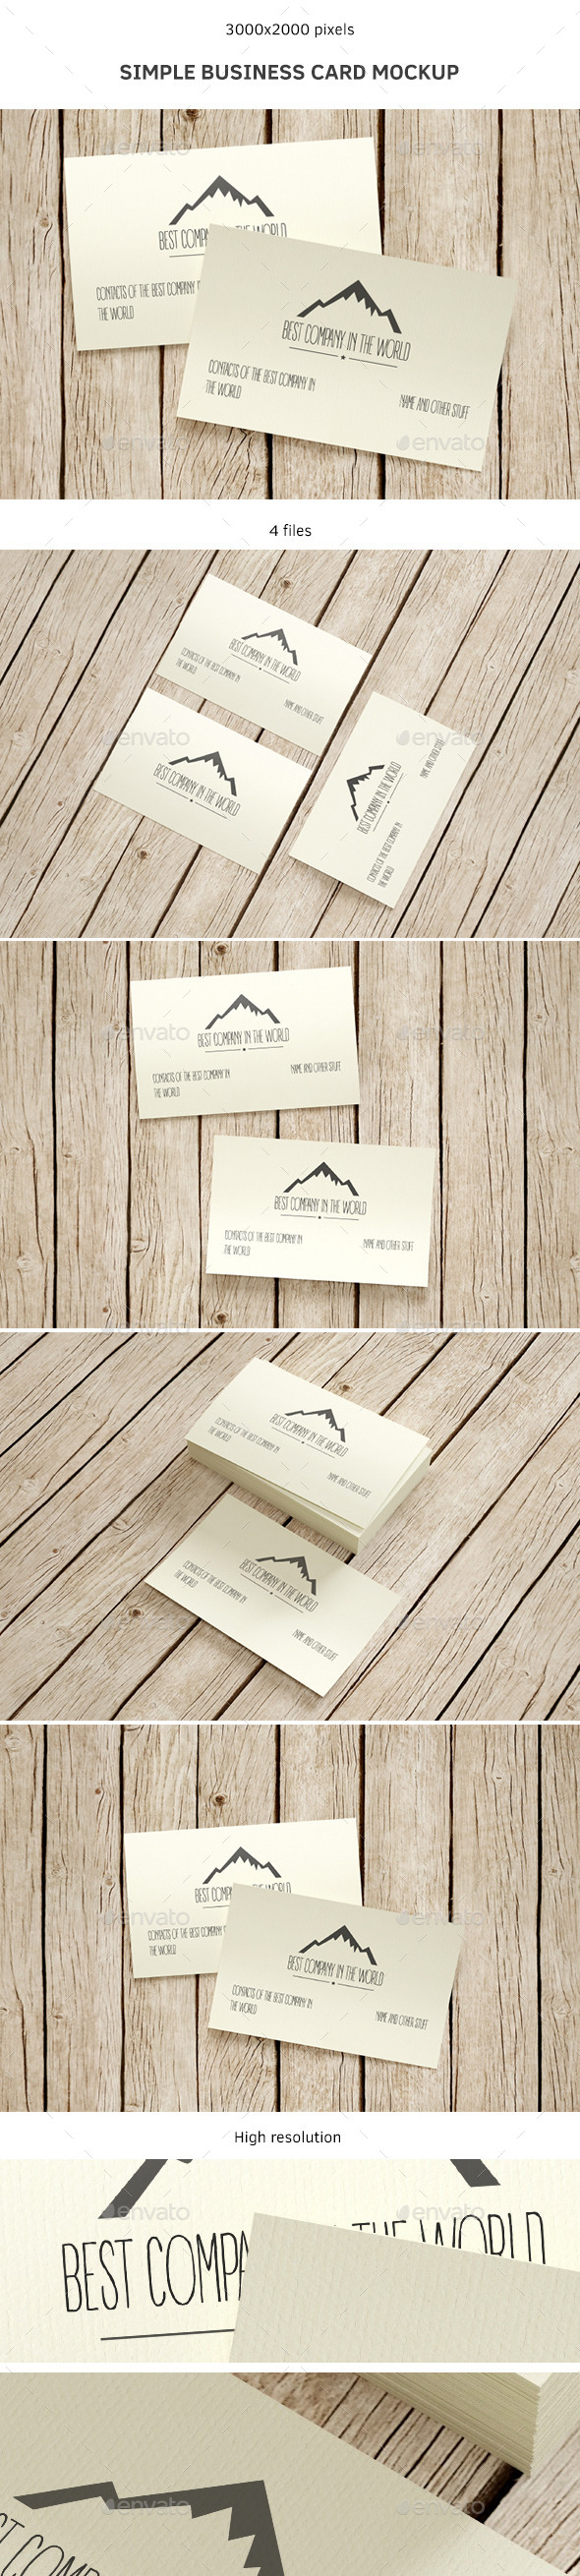 Simple Business Card Mockup - Business Cards Print